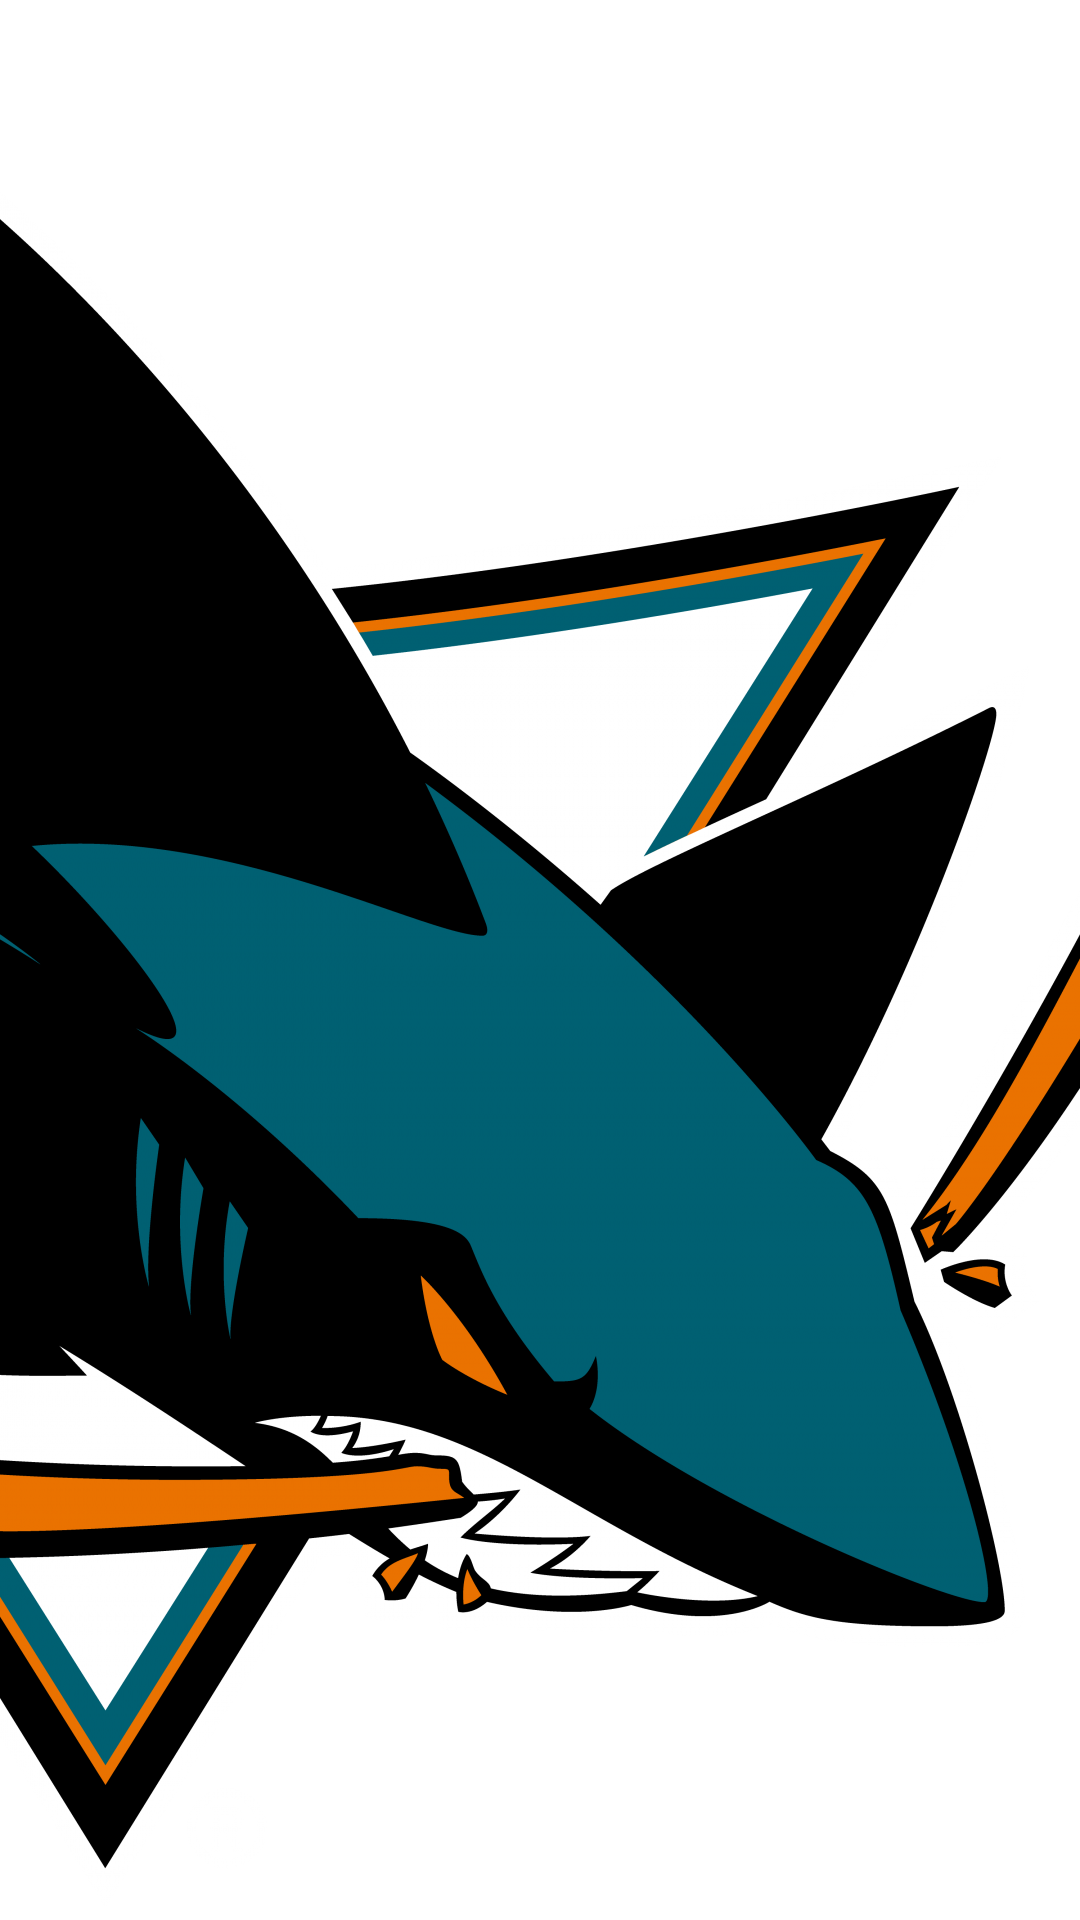 Sports San Jose Sharks 1080x1920 Mobile Wallpaper